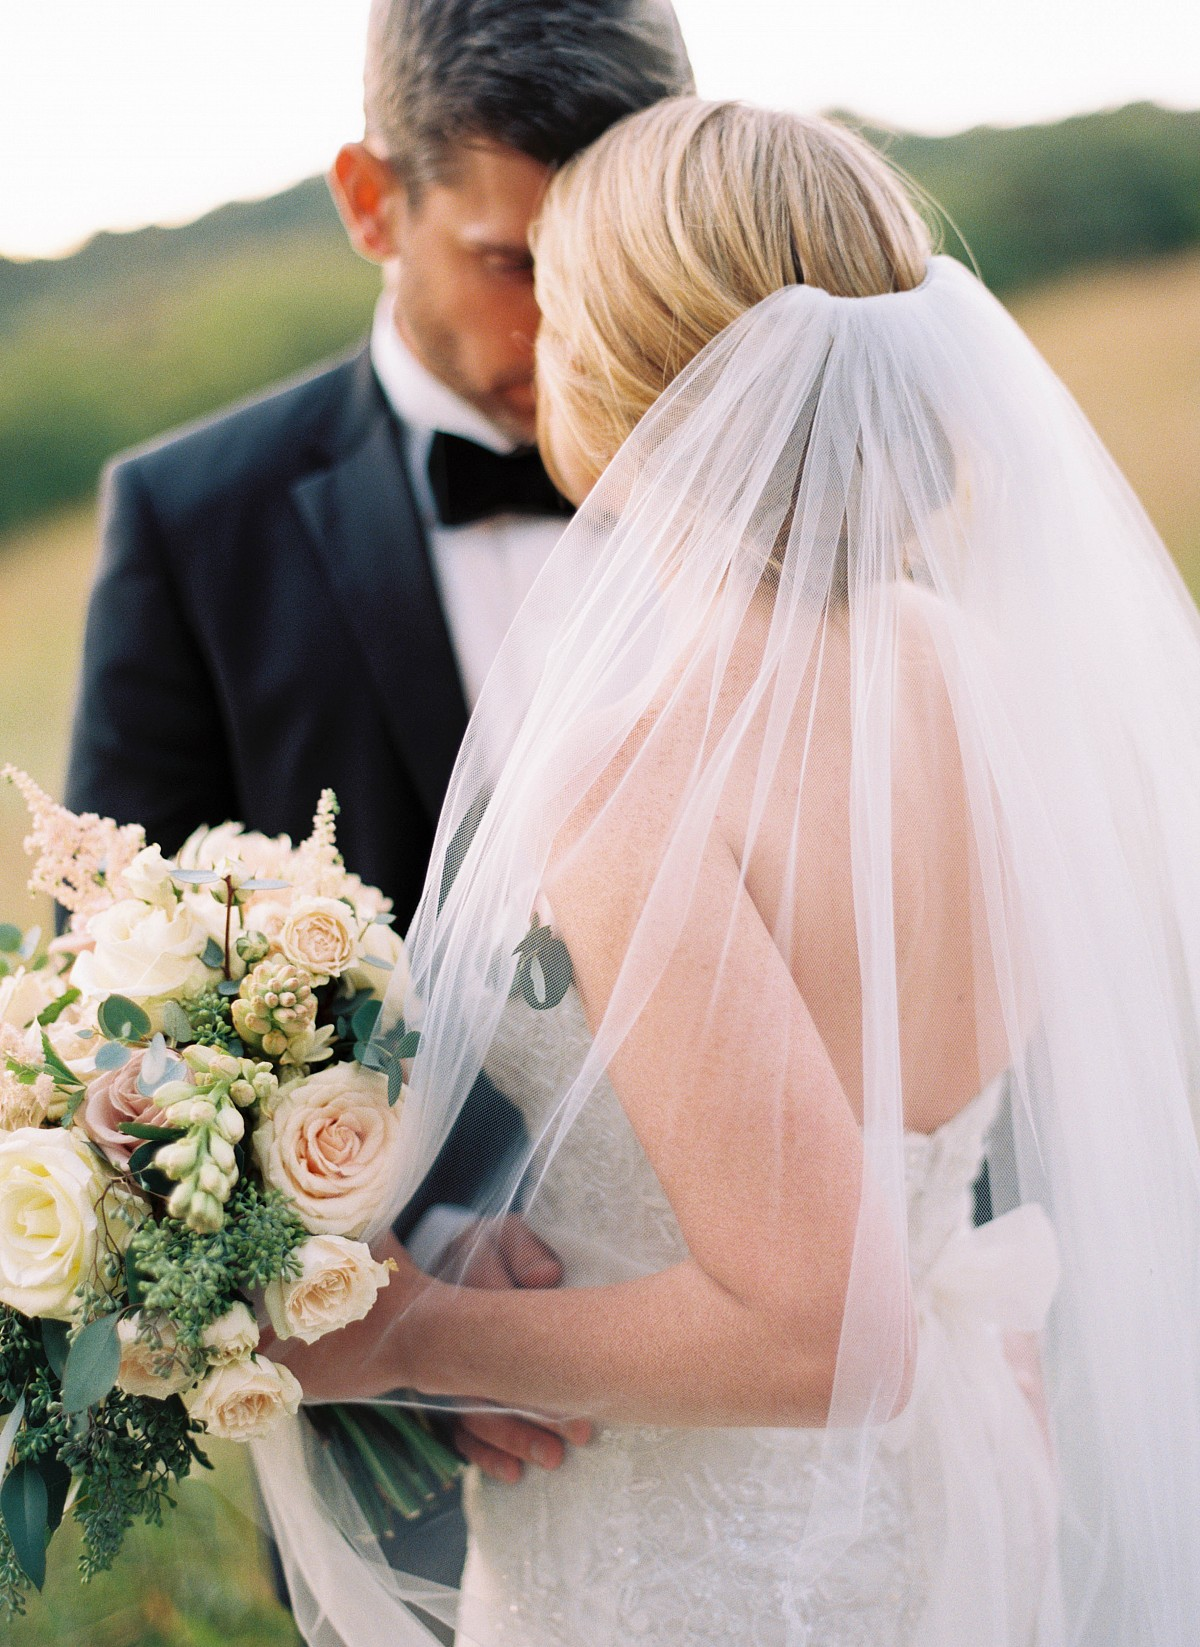 Katie and Sean's Scenic Fall Tennessee Wedding